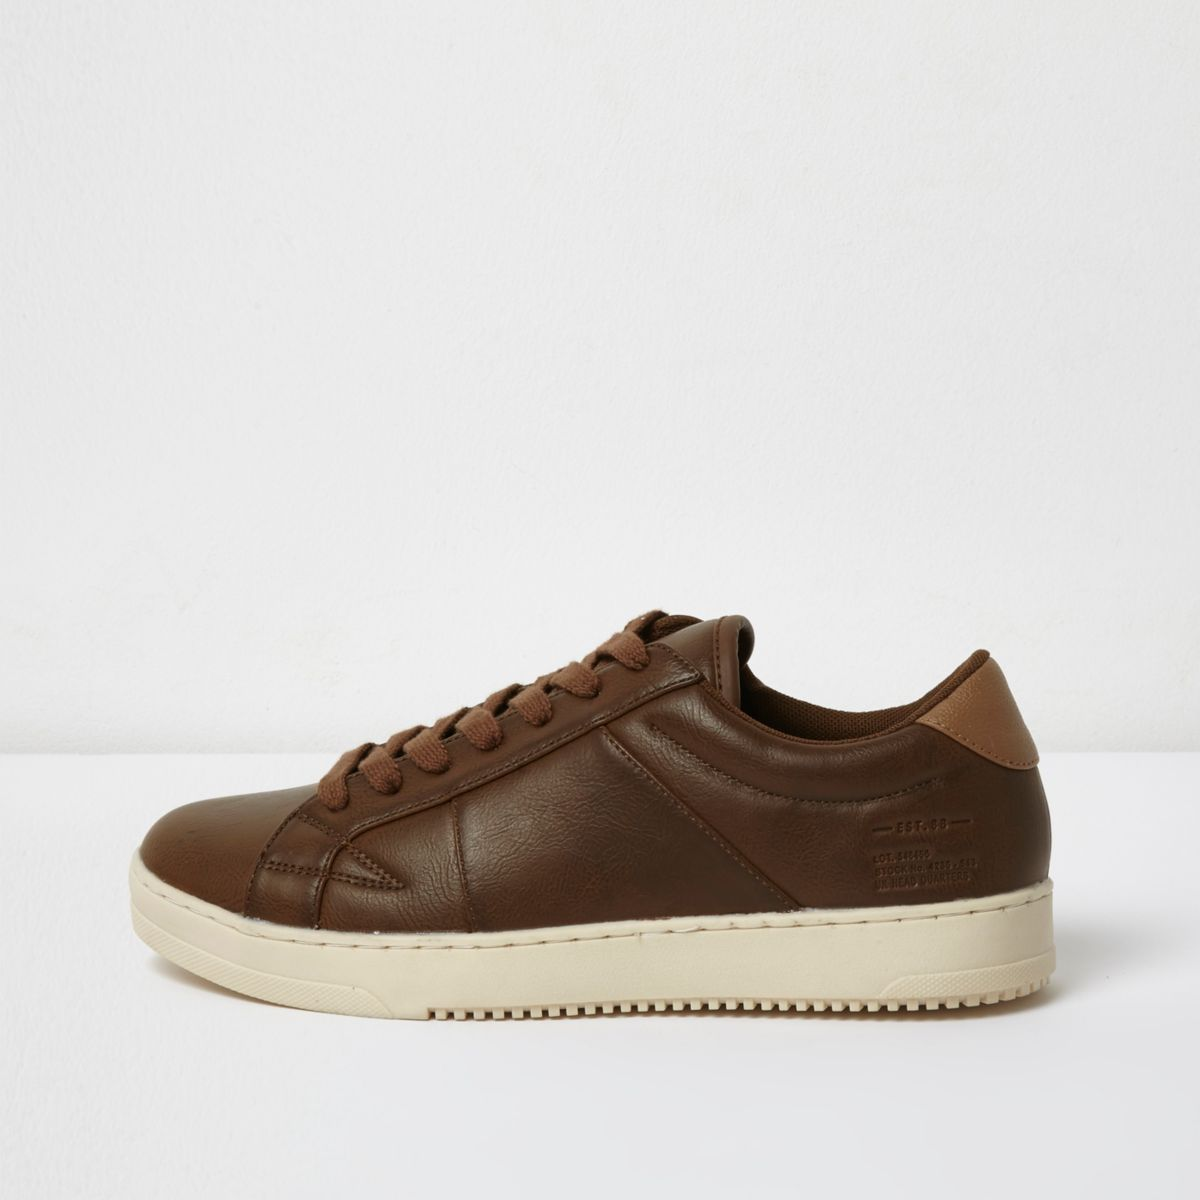 Tan lace-up sneakers